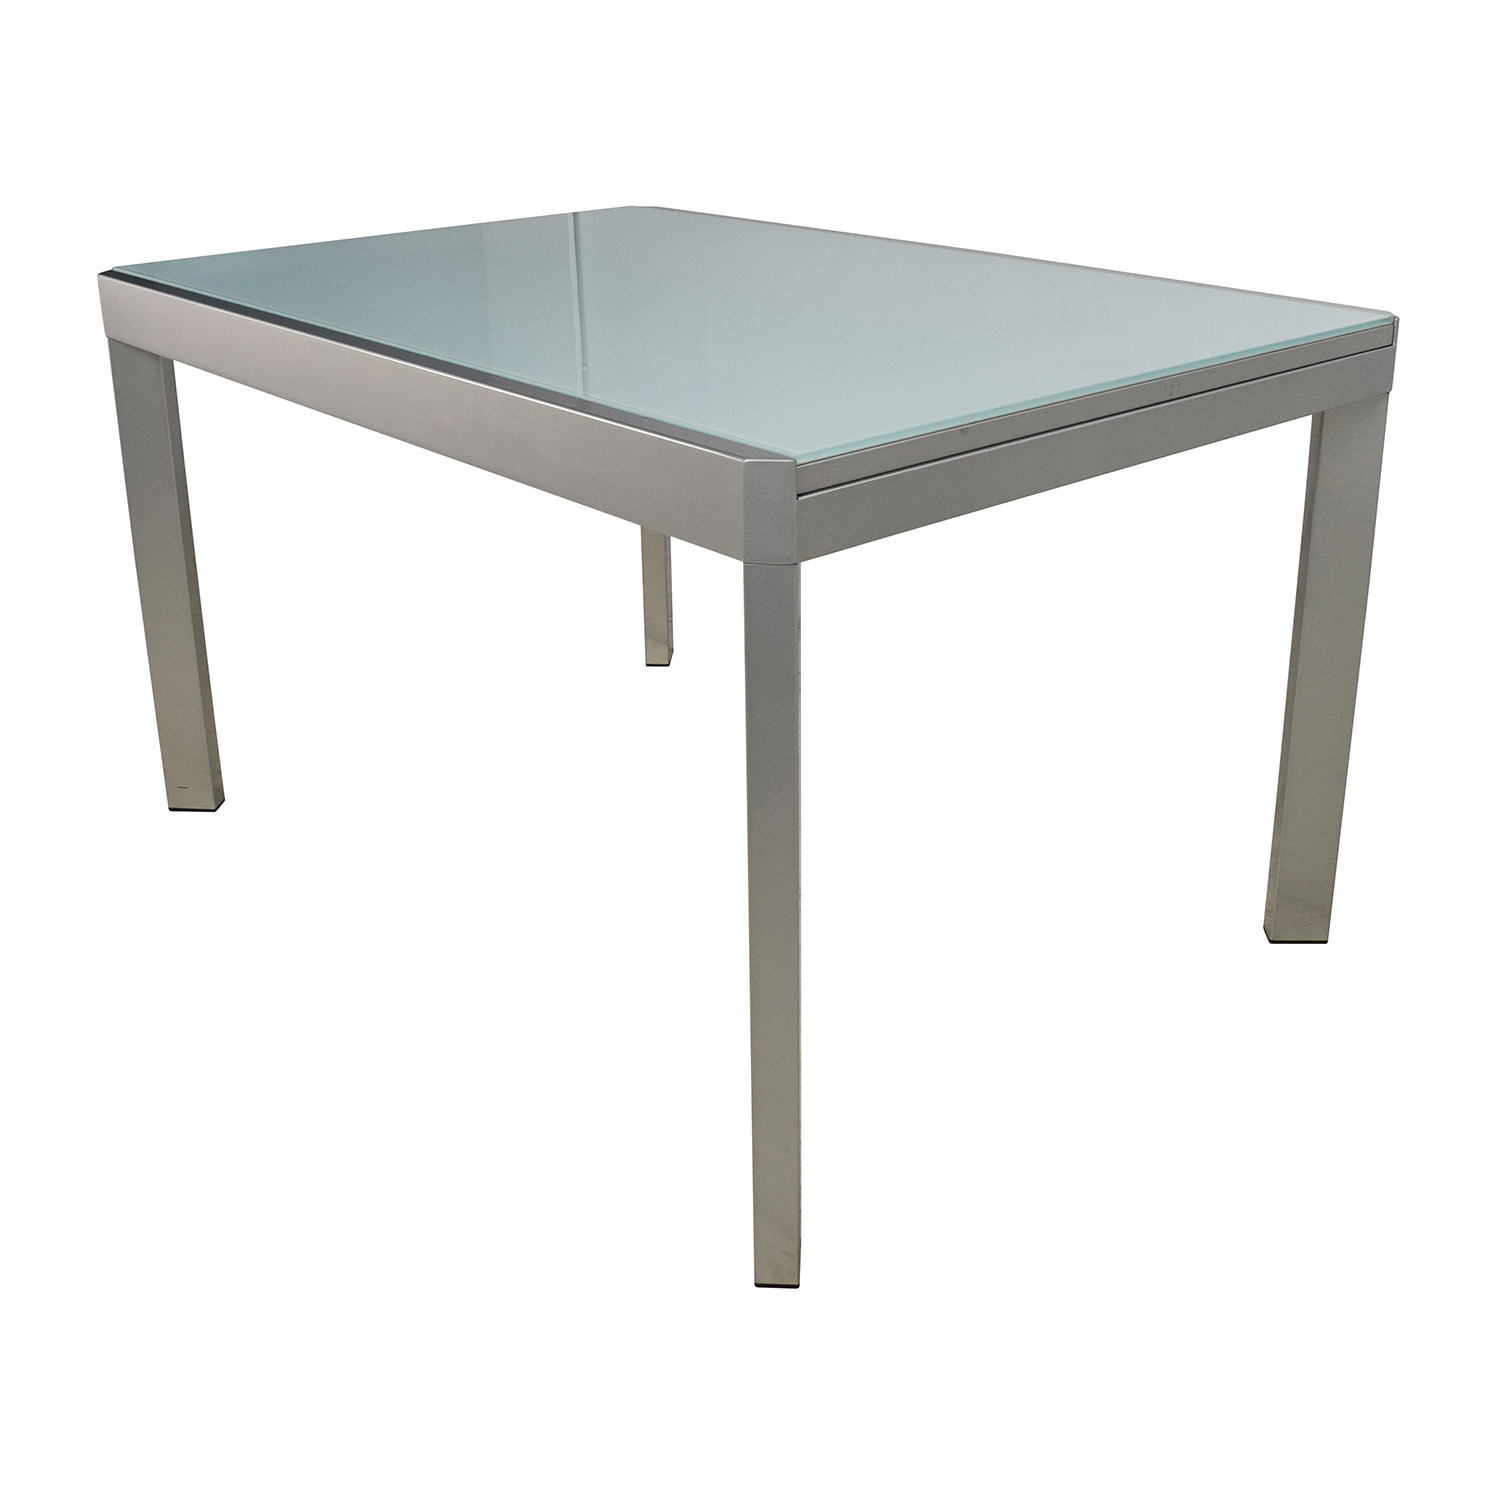 Dining Tables Extendable 86 Off Calligaris Calligaris Extendable Glass Dining